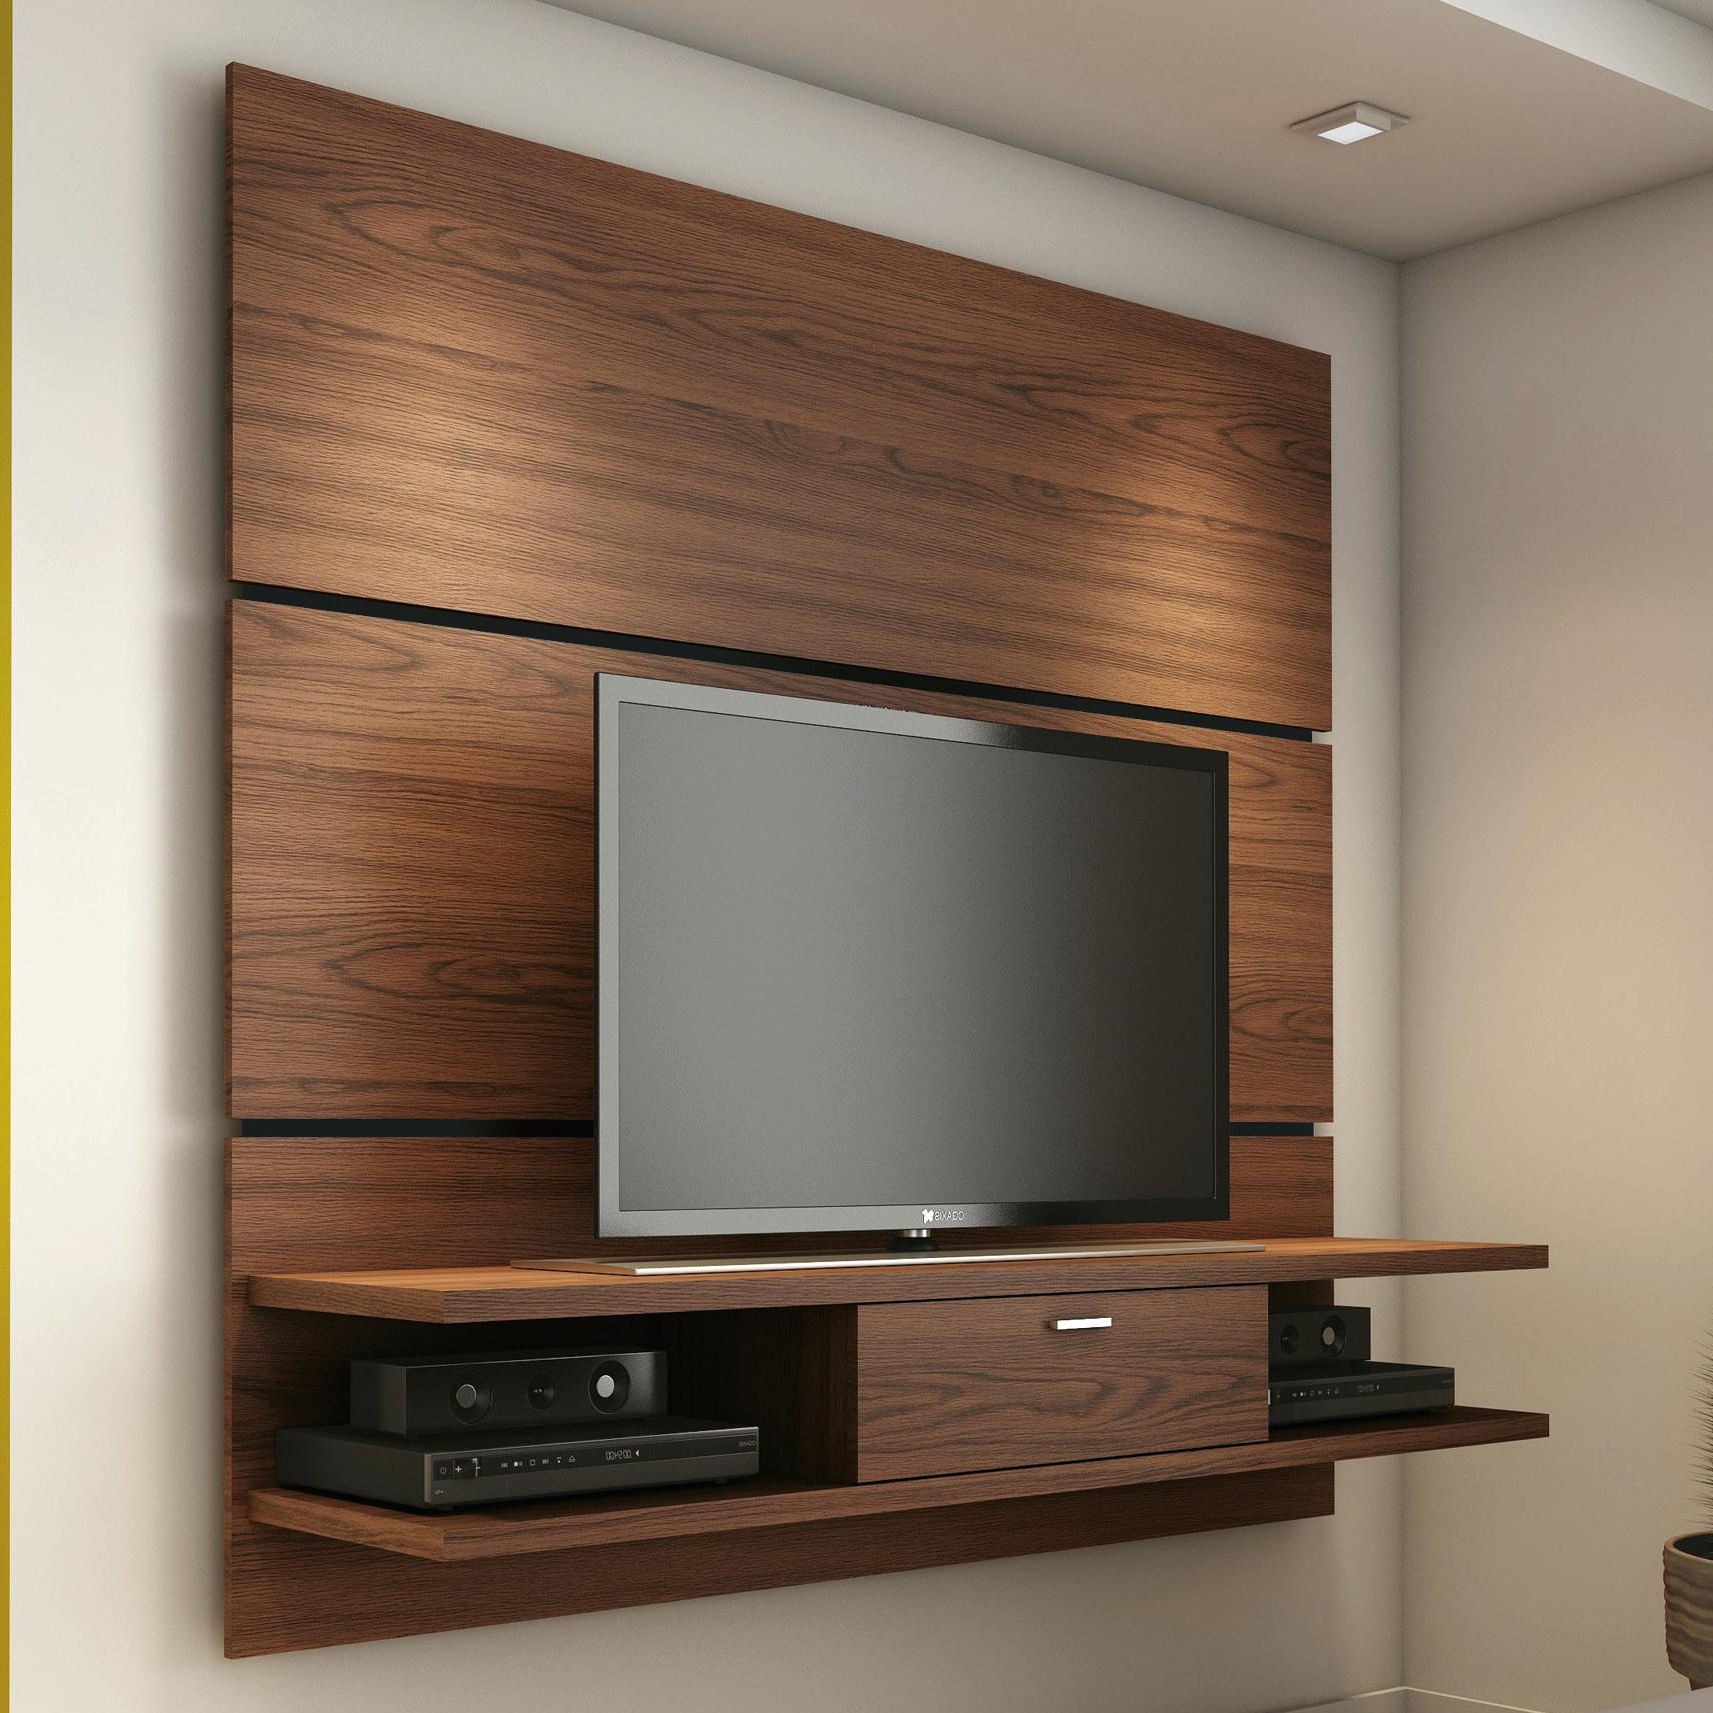 Newest Slim Tv Stands Regarding Furniture: Articles With Slim Tv Stands Flat Screens Tag Thin Tv (Gallery 8 of 20)